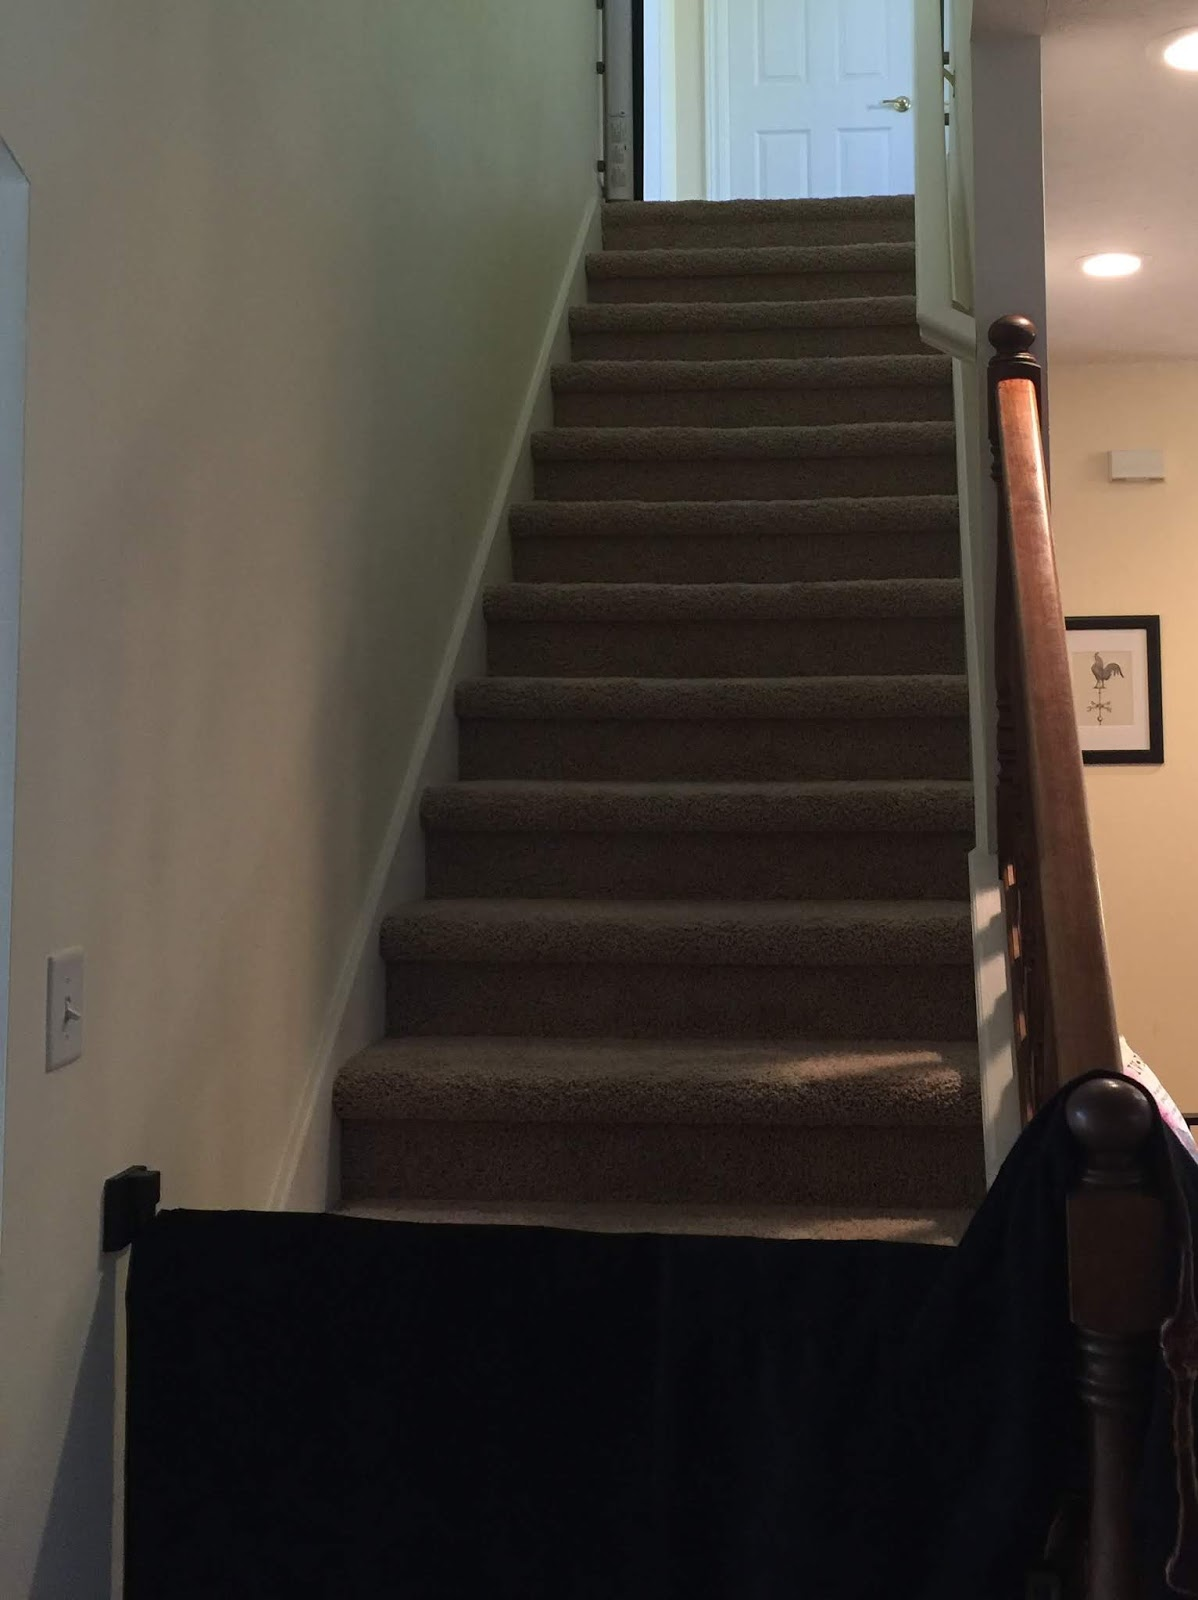 We Started By Removing The Carpet And Pad From The Stairway. Yuck. Ed  Pulled The Carpet/pad And About A Million Staples. Seriously, Every Time He  Thought He ...